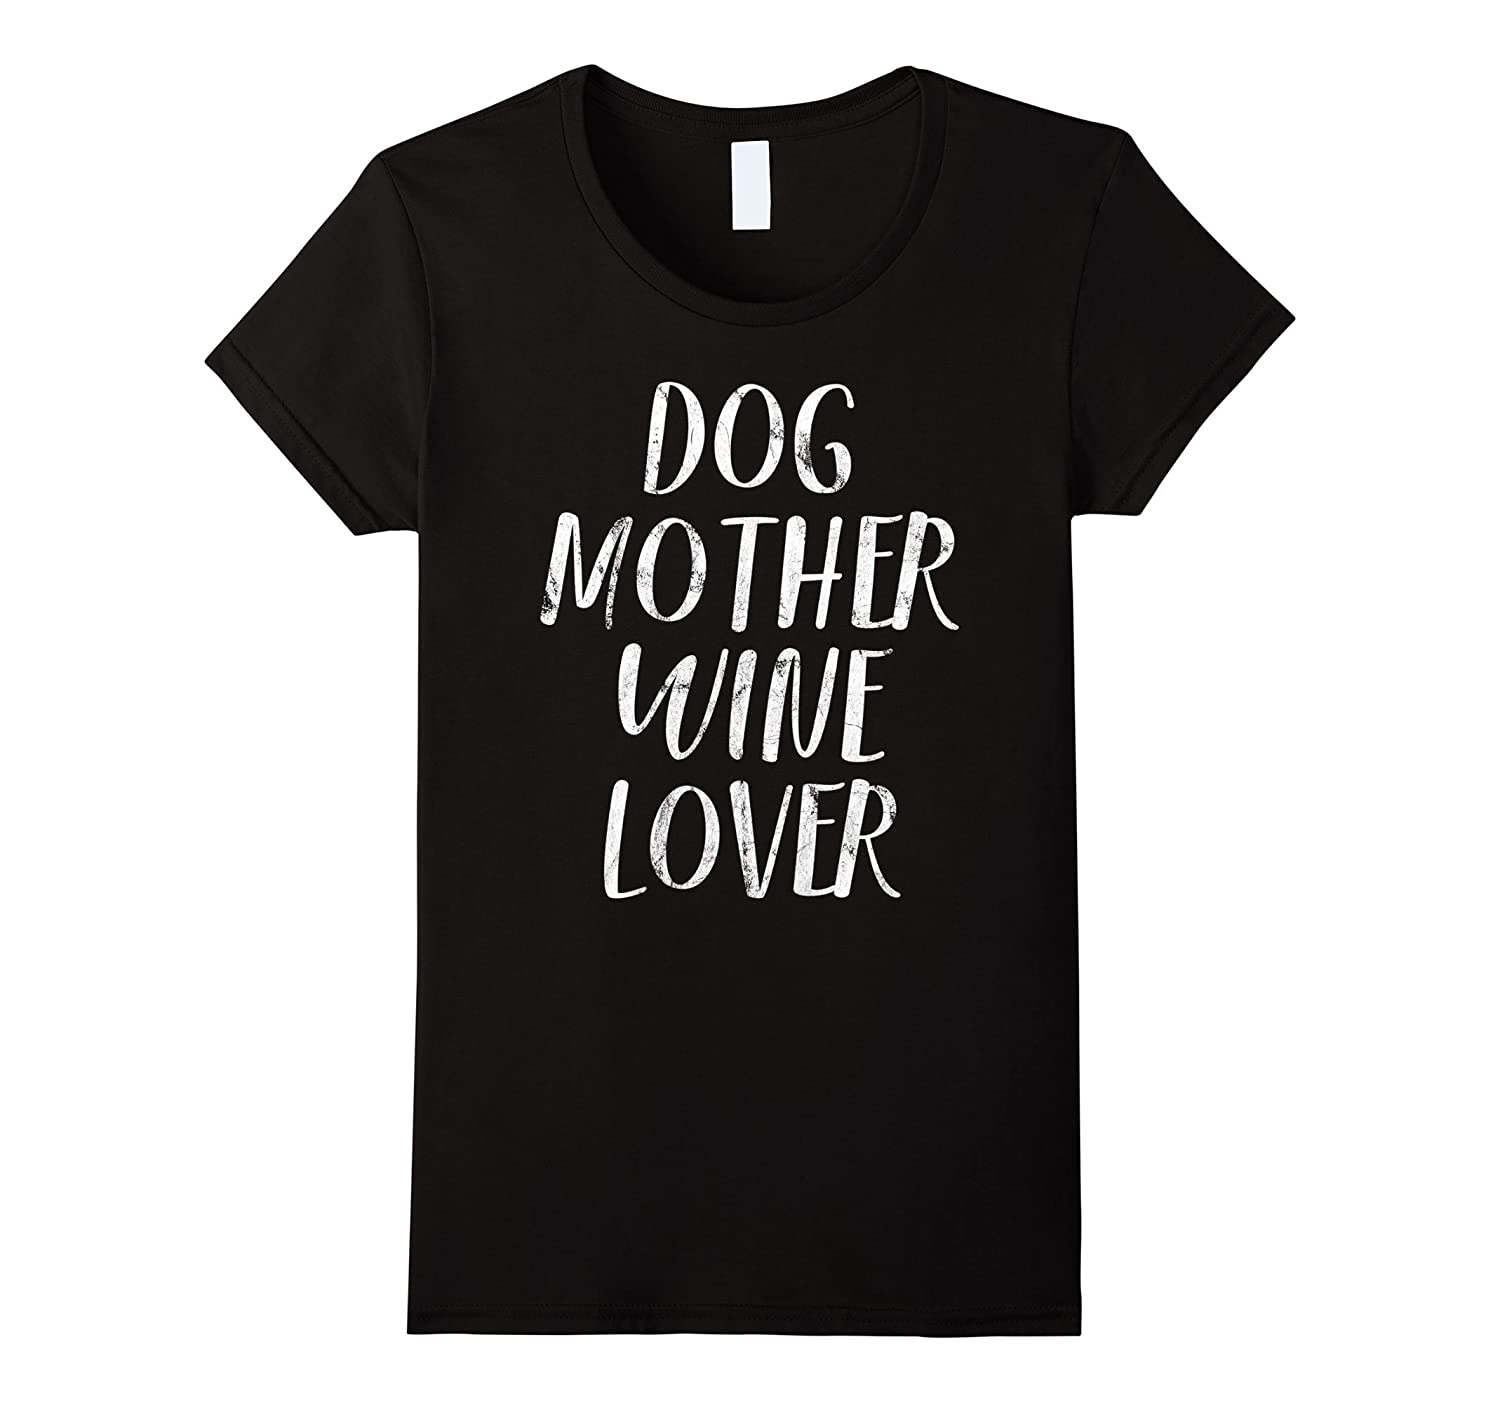 Womens Dog Mother Wine Lover: Funny Pet Dog & Wine T-Shirt Gift